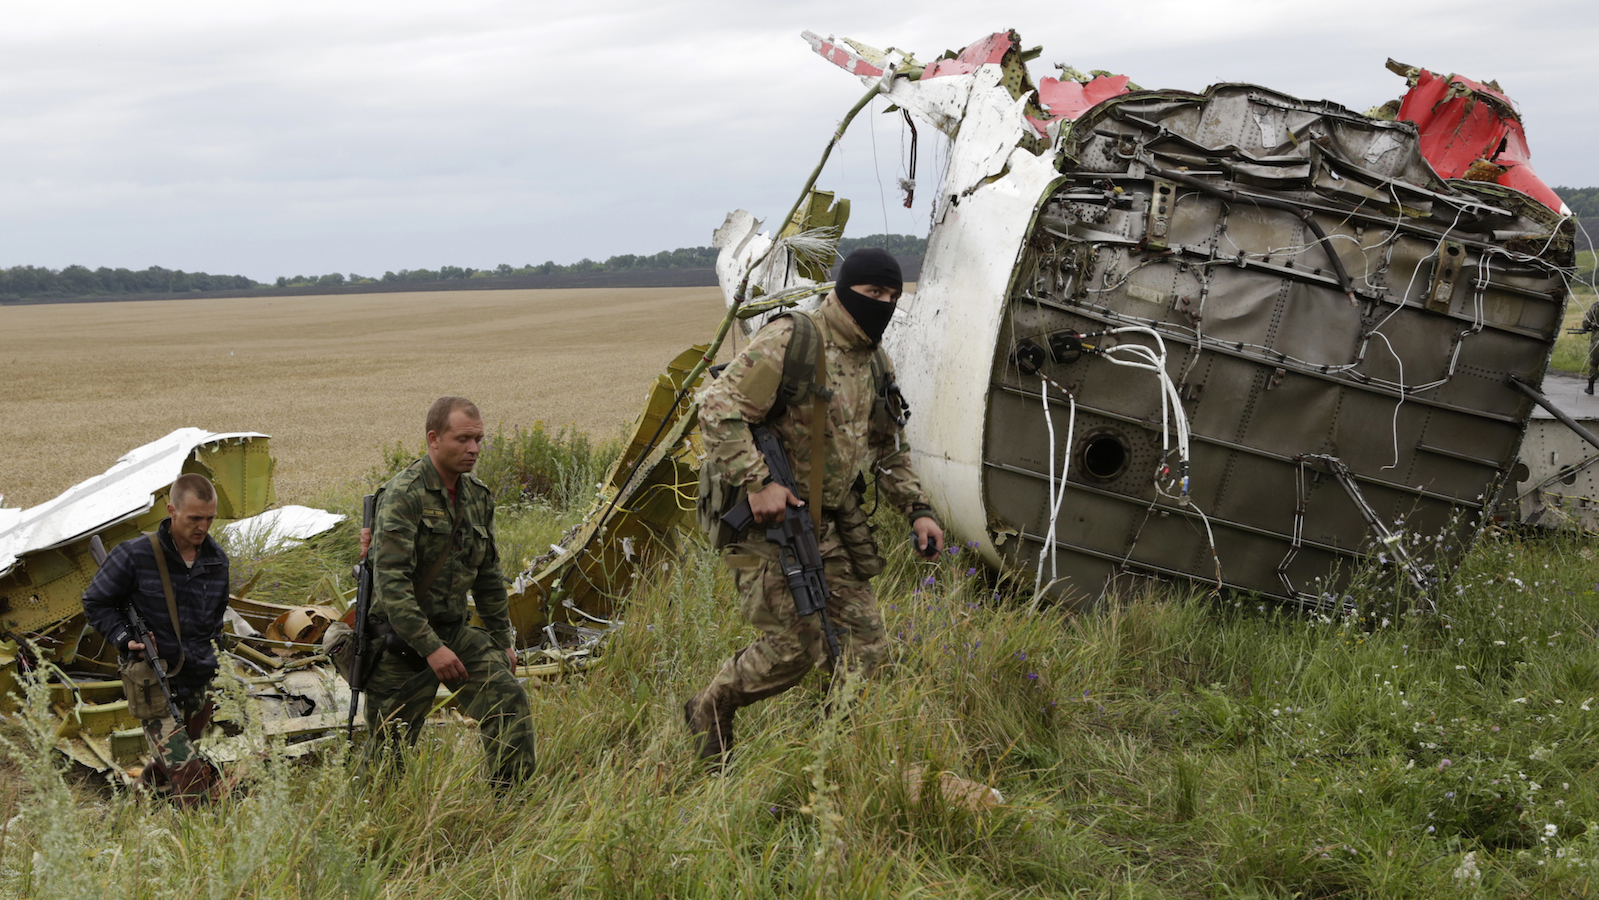 Pro-Russian fighters walk at the site of a crashed Malaysia Airlines passenger plane near the village of Hrabove, Ukraine, eastern Ukraine Friday, July 18, 2014. Rescue workers, policemen and even off-duty coal miners were combing a sprawling area in eastern Ukraine near the Russian border where the Malaysian plane ended up in burning pieces Thursday, killing all aboard. (AP Photo/Dmitry Lovetsky)